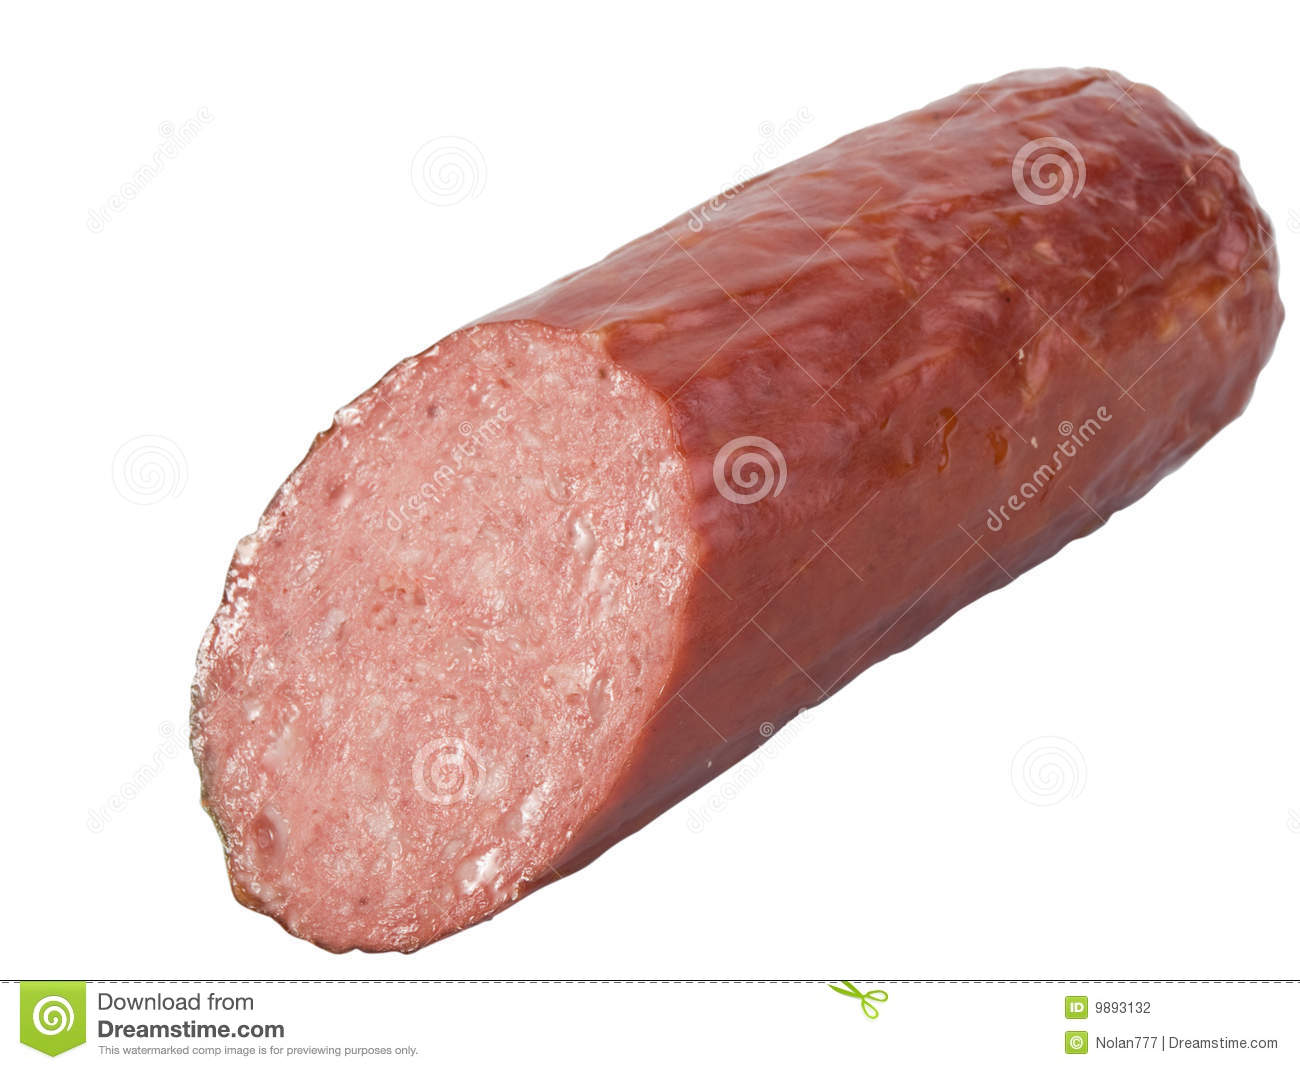 how to cook a sausage dry